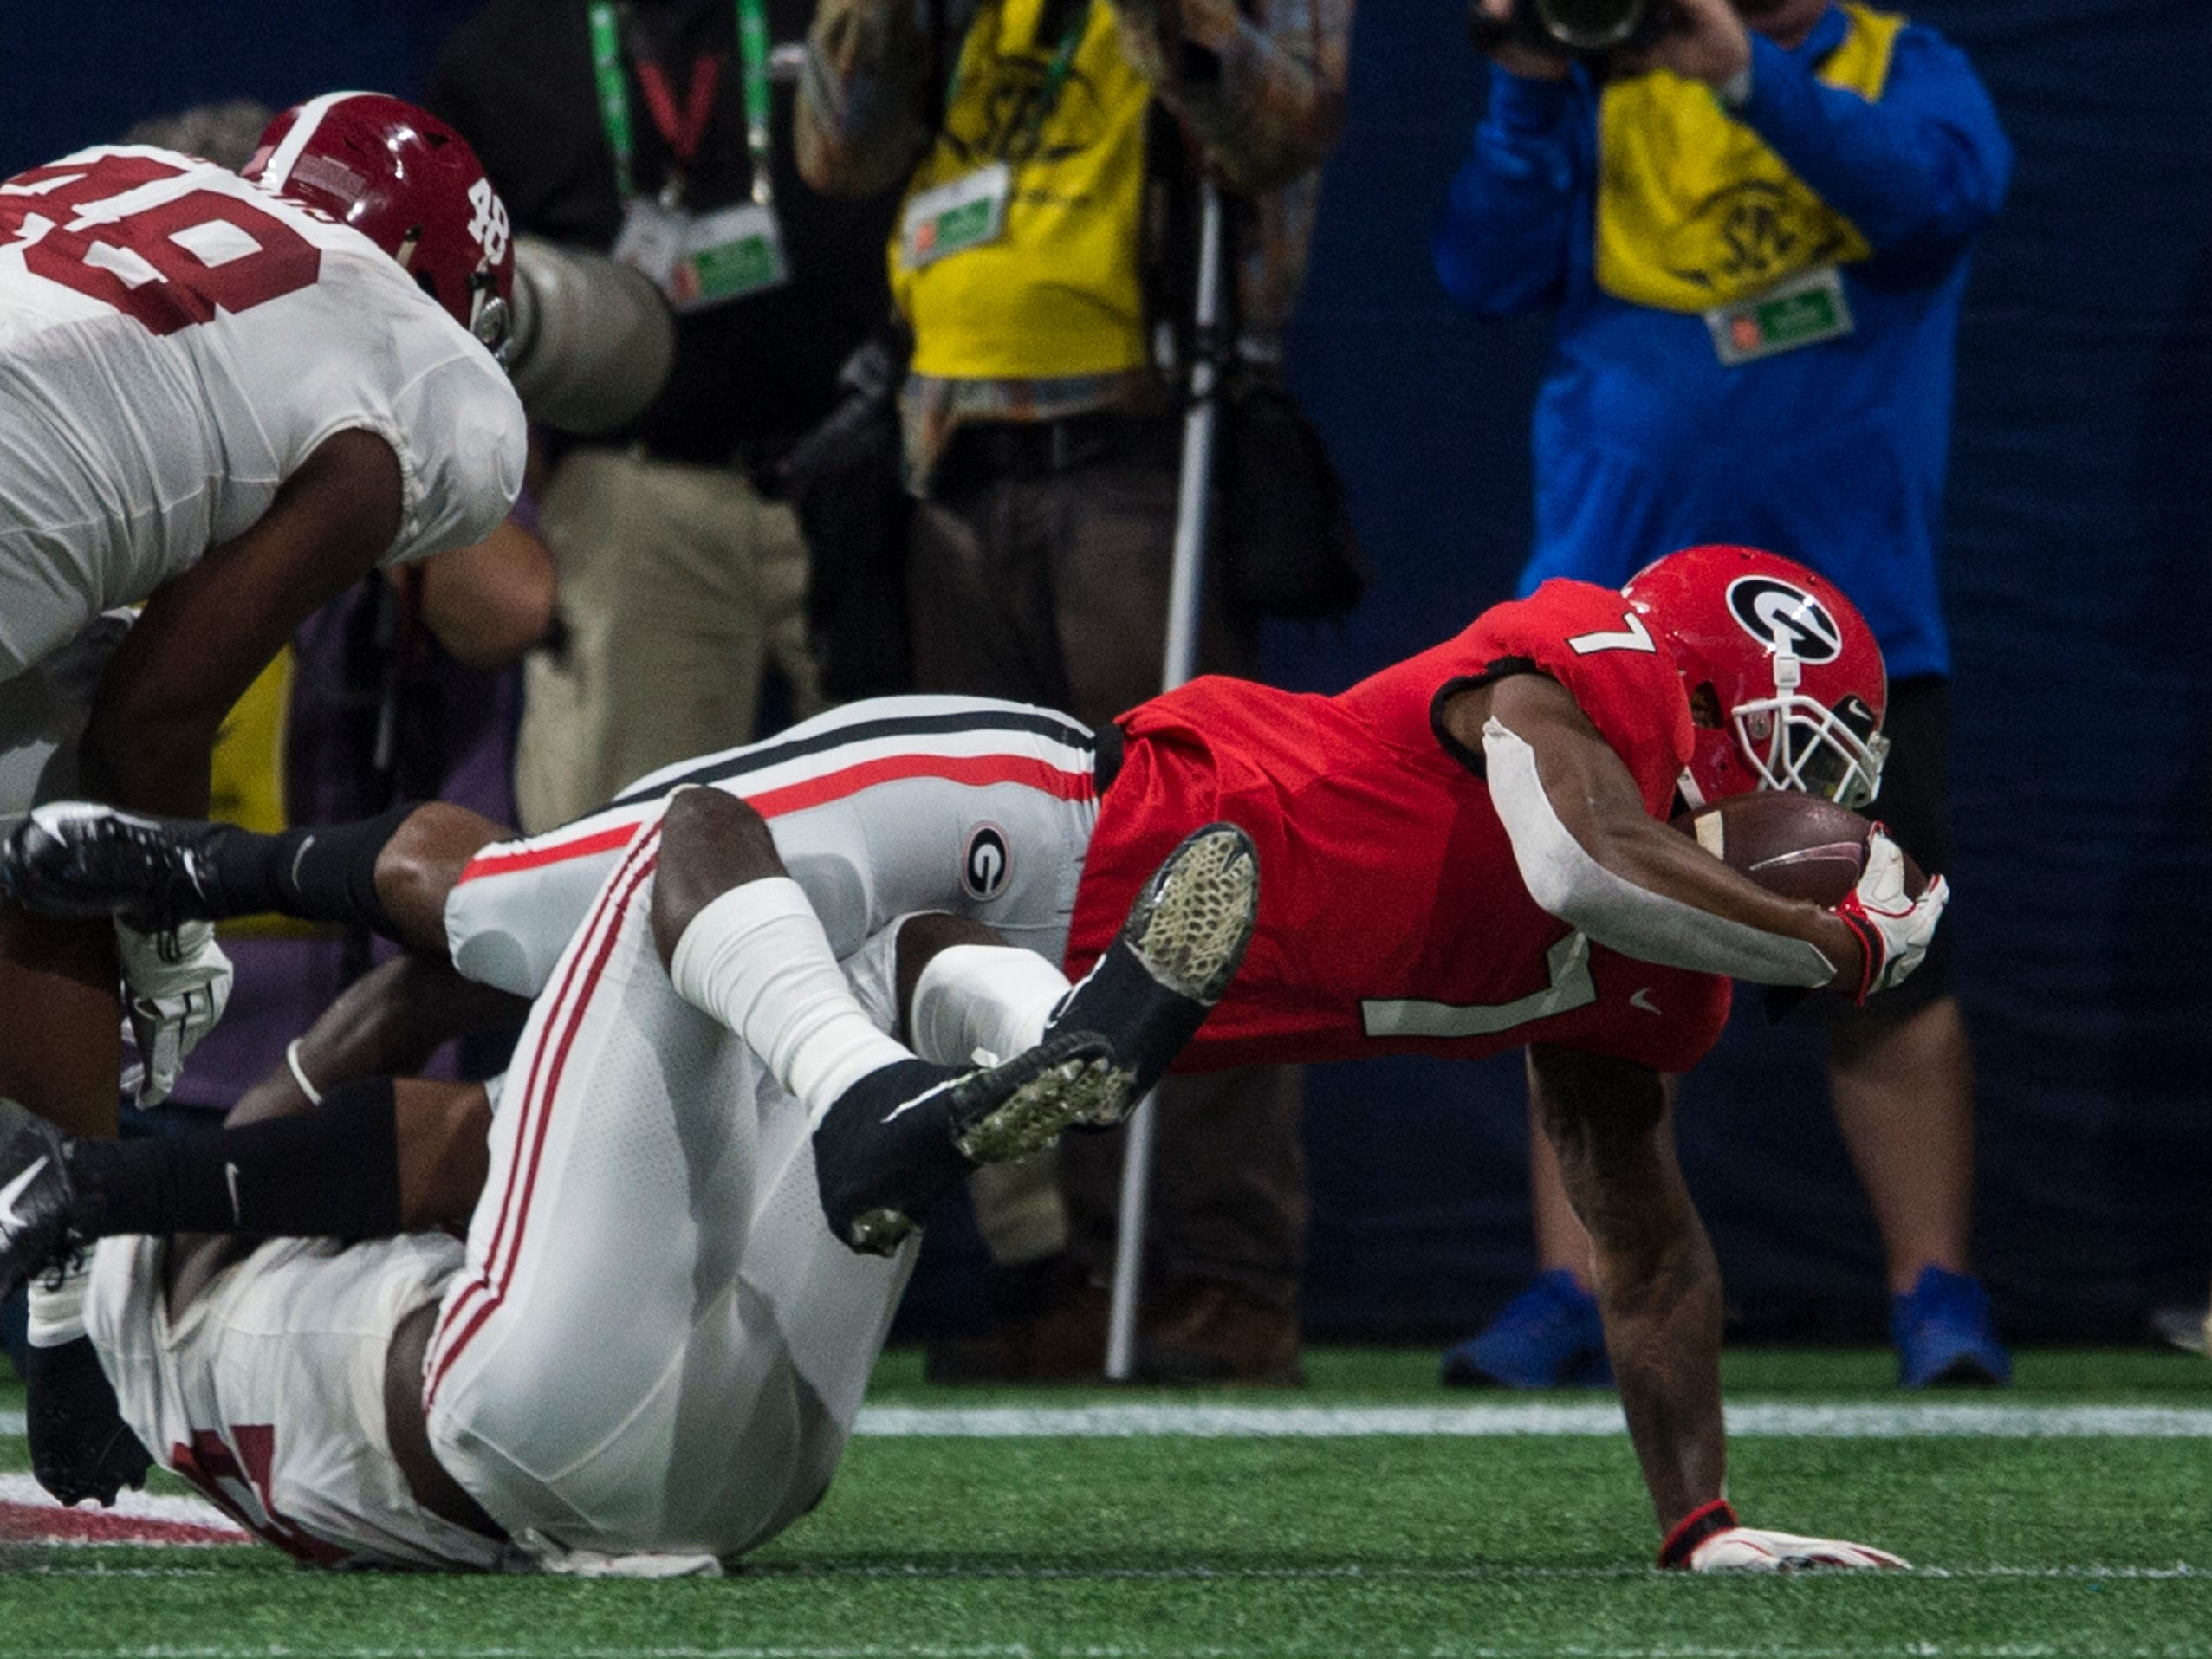 Georgia running back D'Andre Swift (7) dives into the end zone for a touchdown during the SEC Championship game at Mercedes-Benz Stadium in Atlanta, Ga., on Saturday Dec. 1, 2018. Alabama defeated Georgia 35-28.